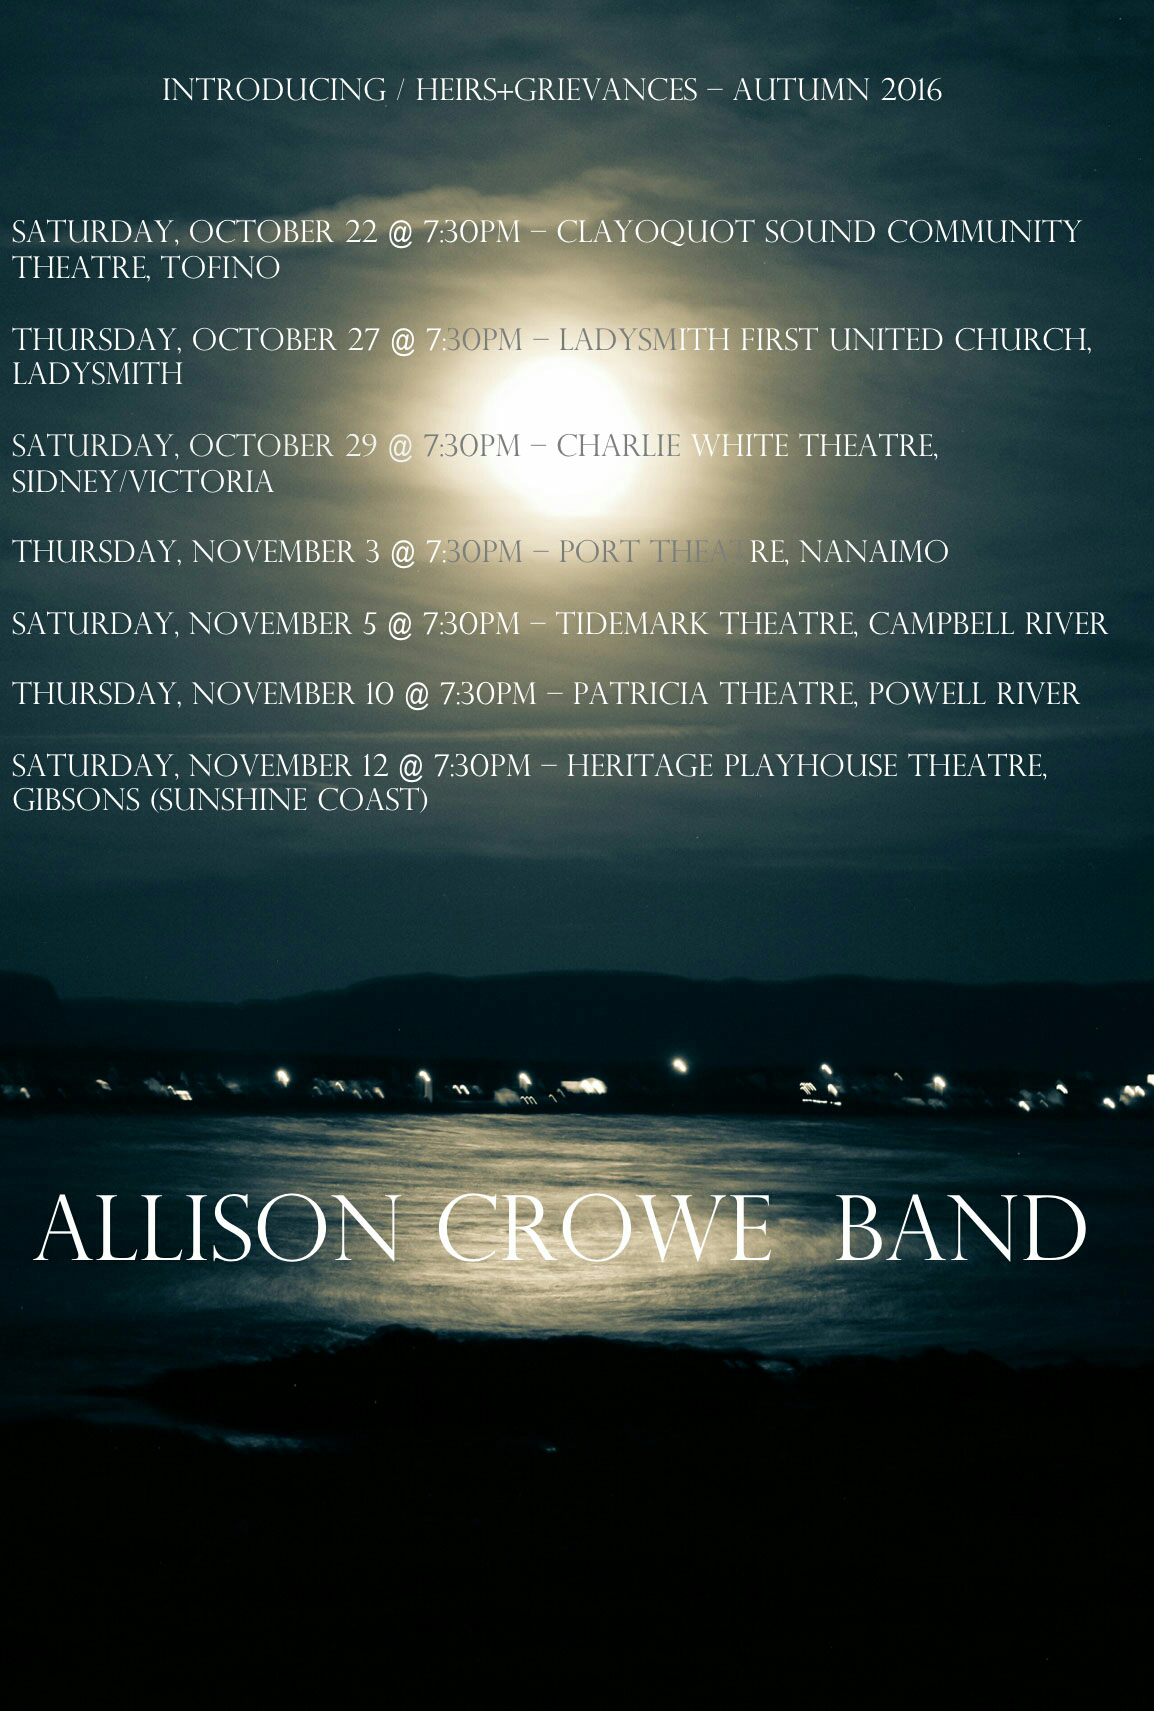 Allison Crowe and Band: Introducing / Heirs+Grievances - Autumn 2016 Tour